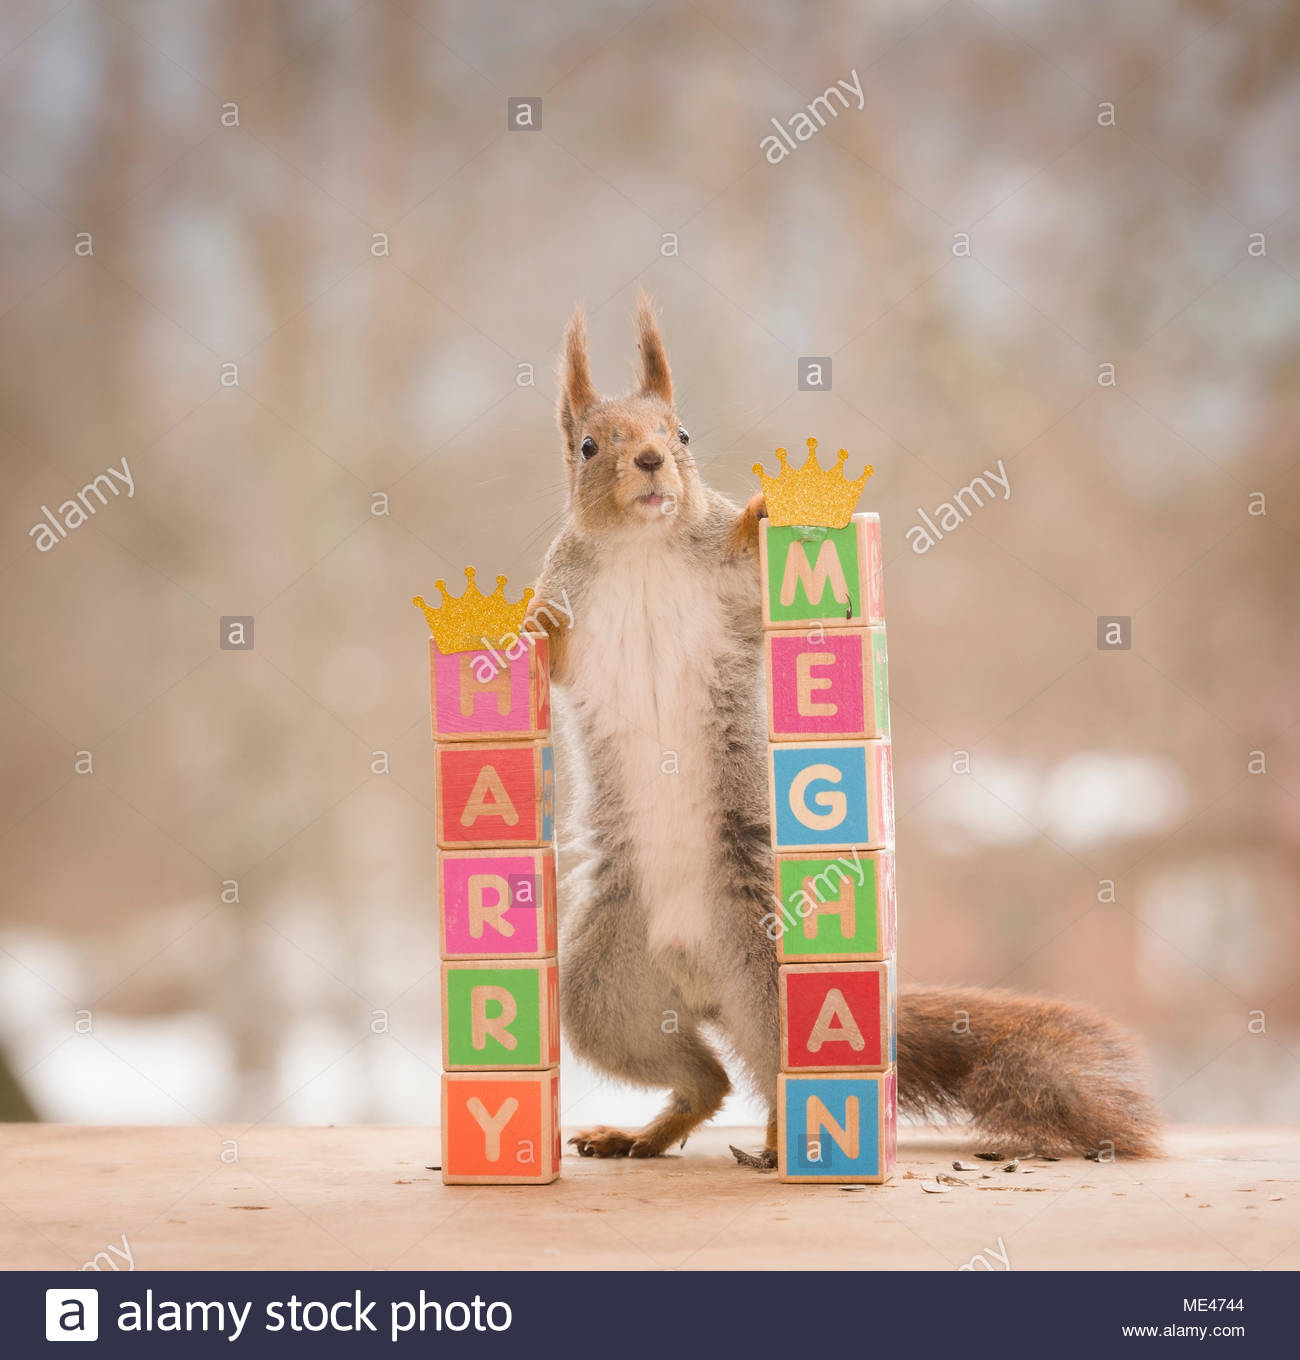 red squirrel and blocks and royal names - Stock Image